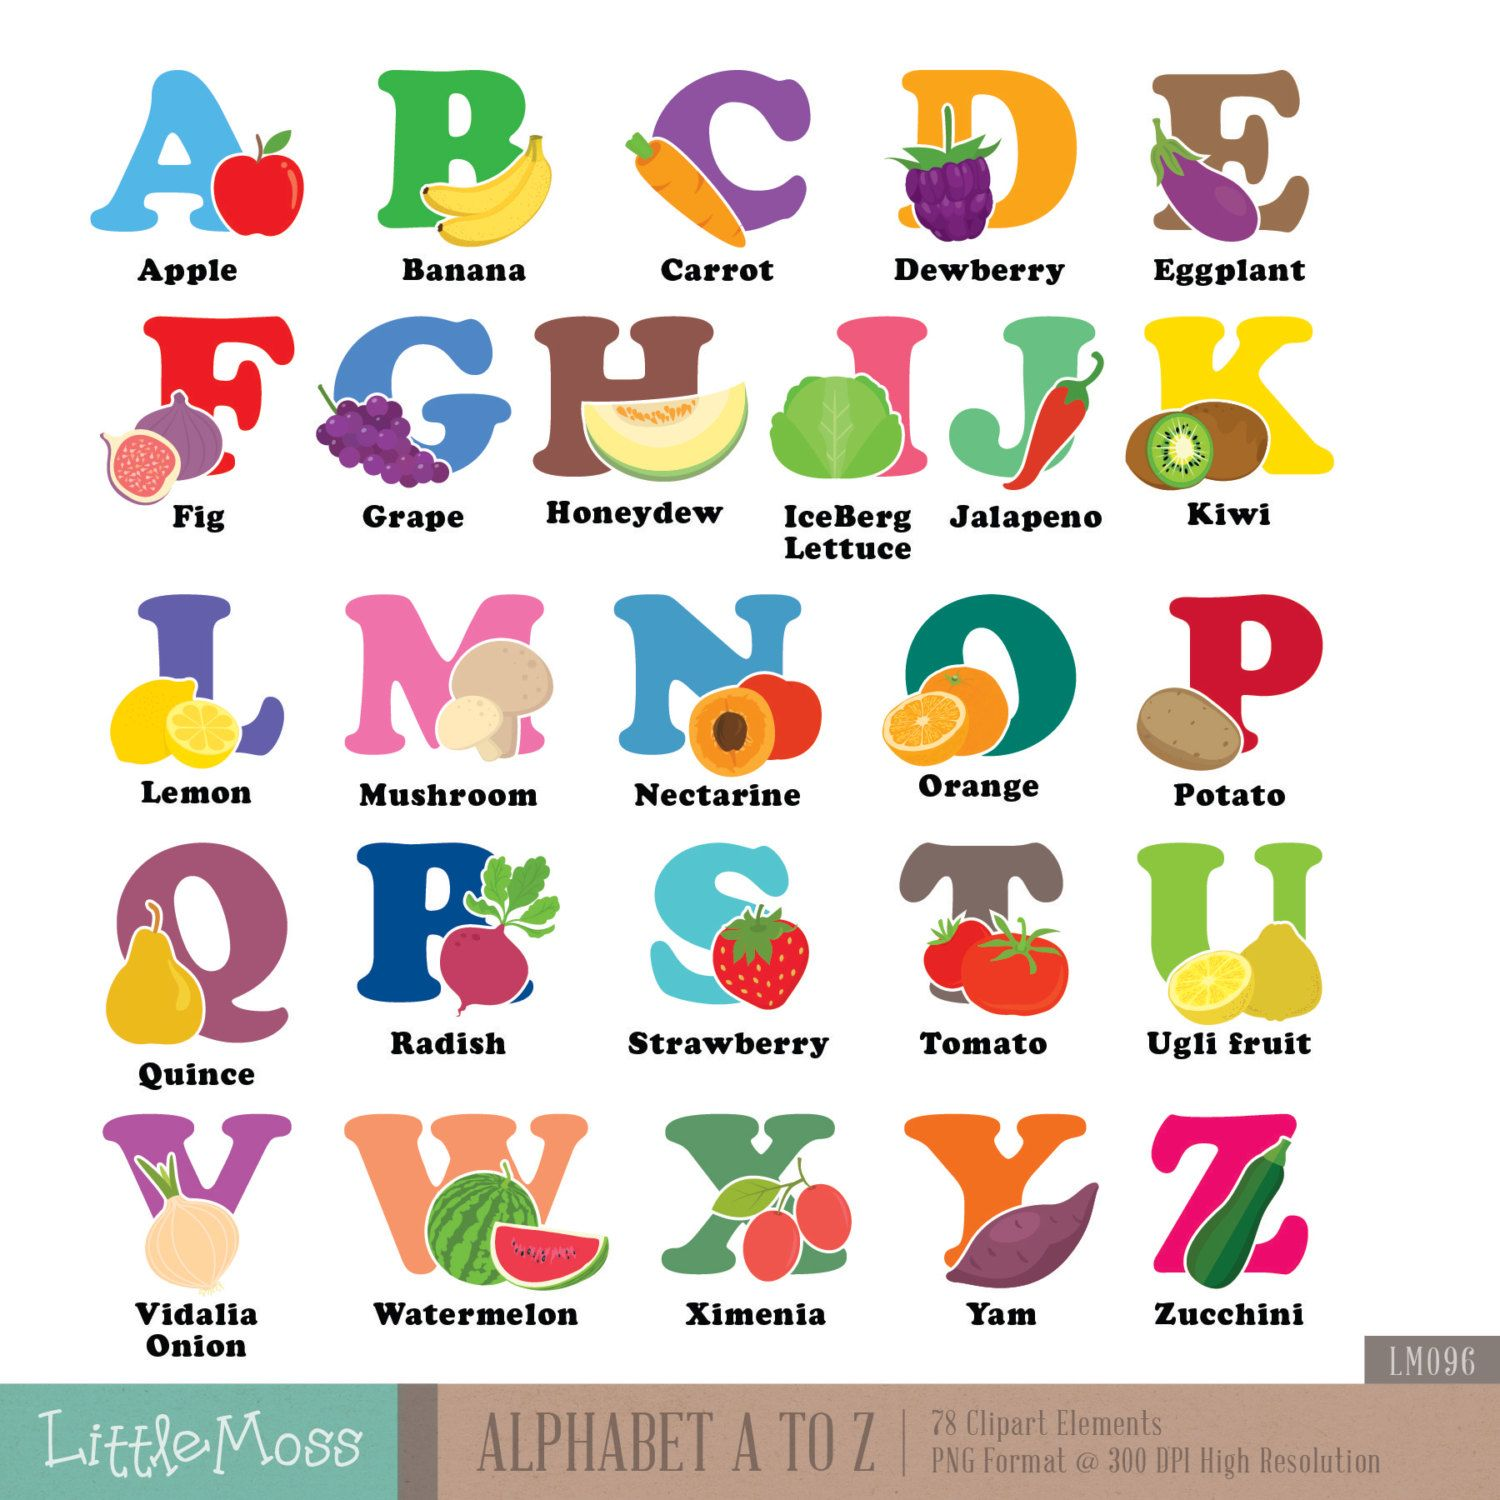 Dictionary clipart a to z. Alphabet digital vegetable and